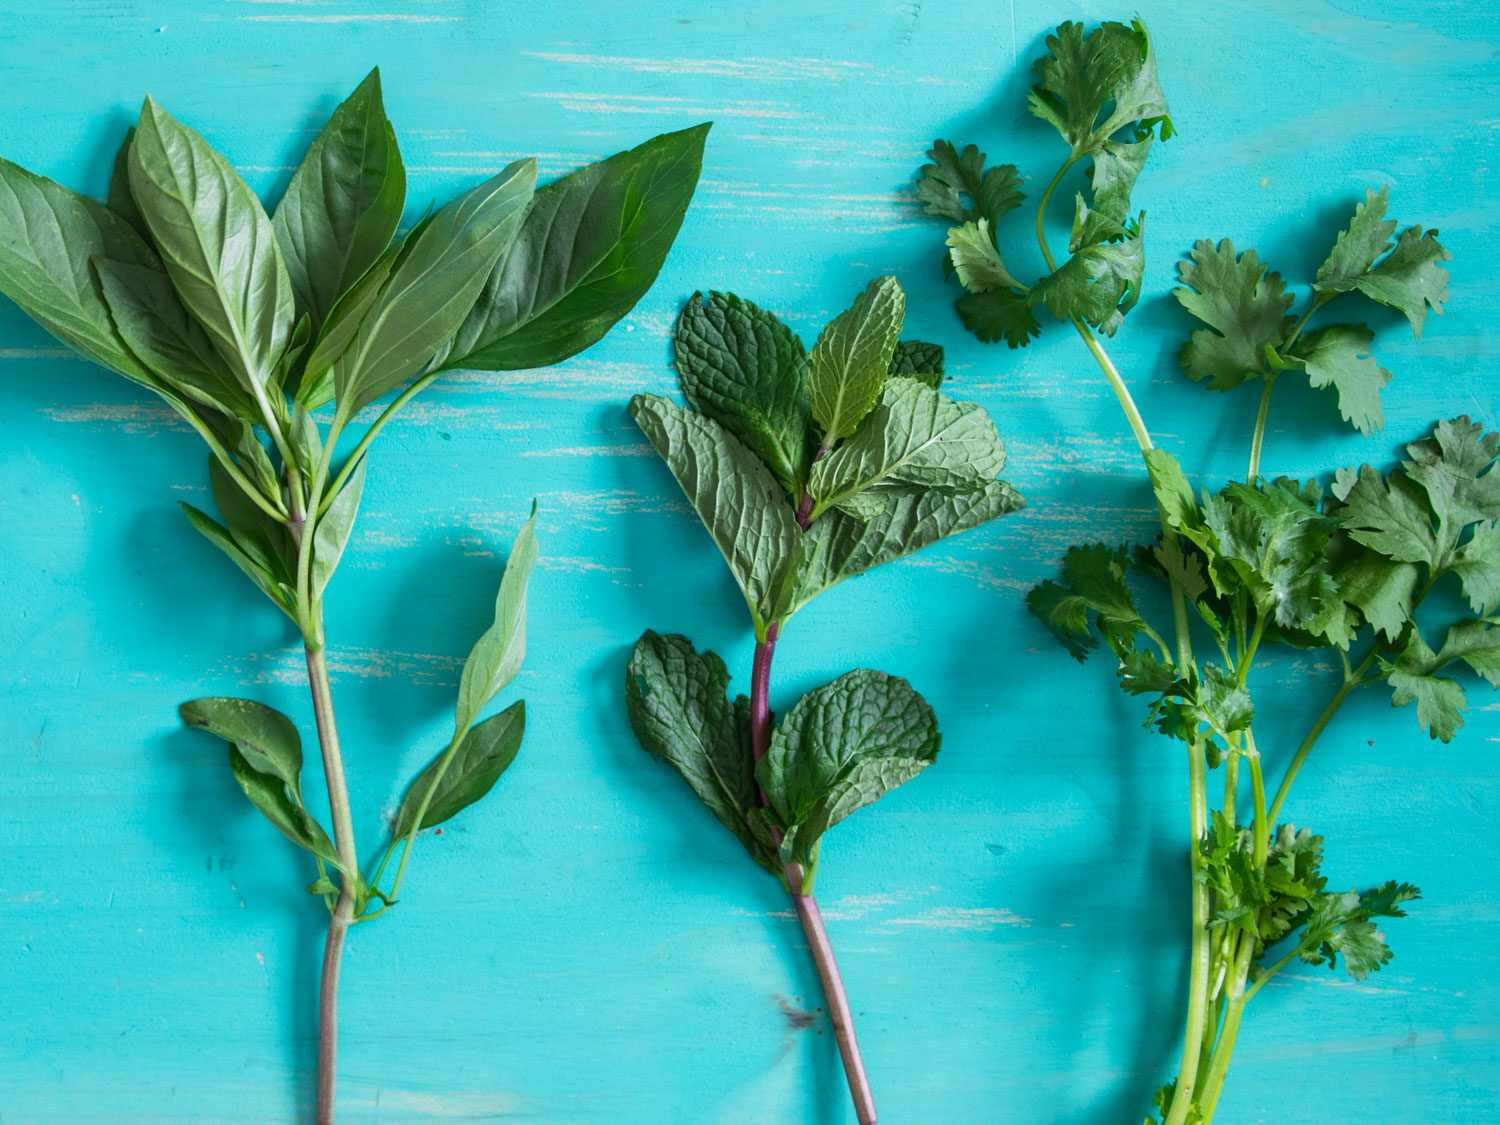 A variety of fresh herbs on a blue background